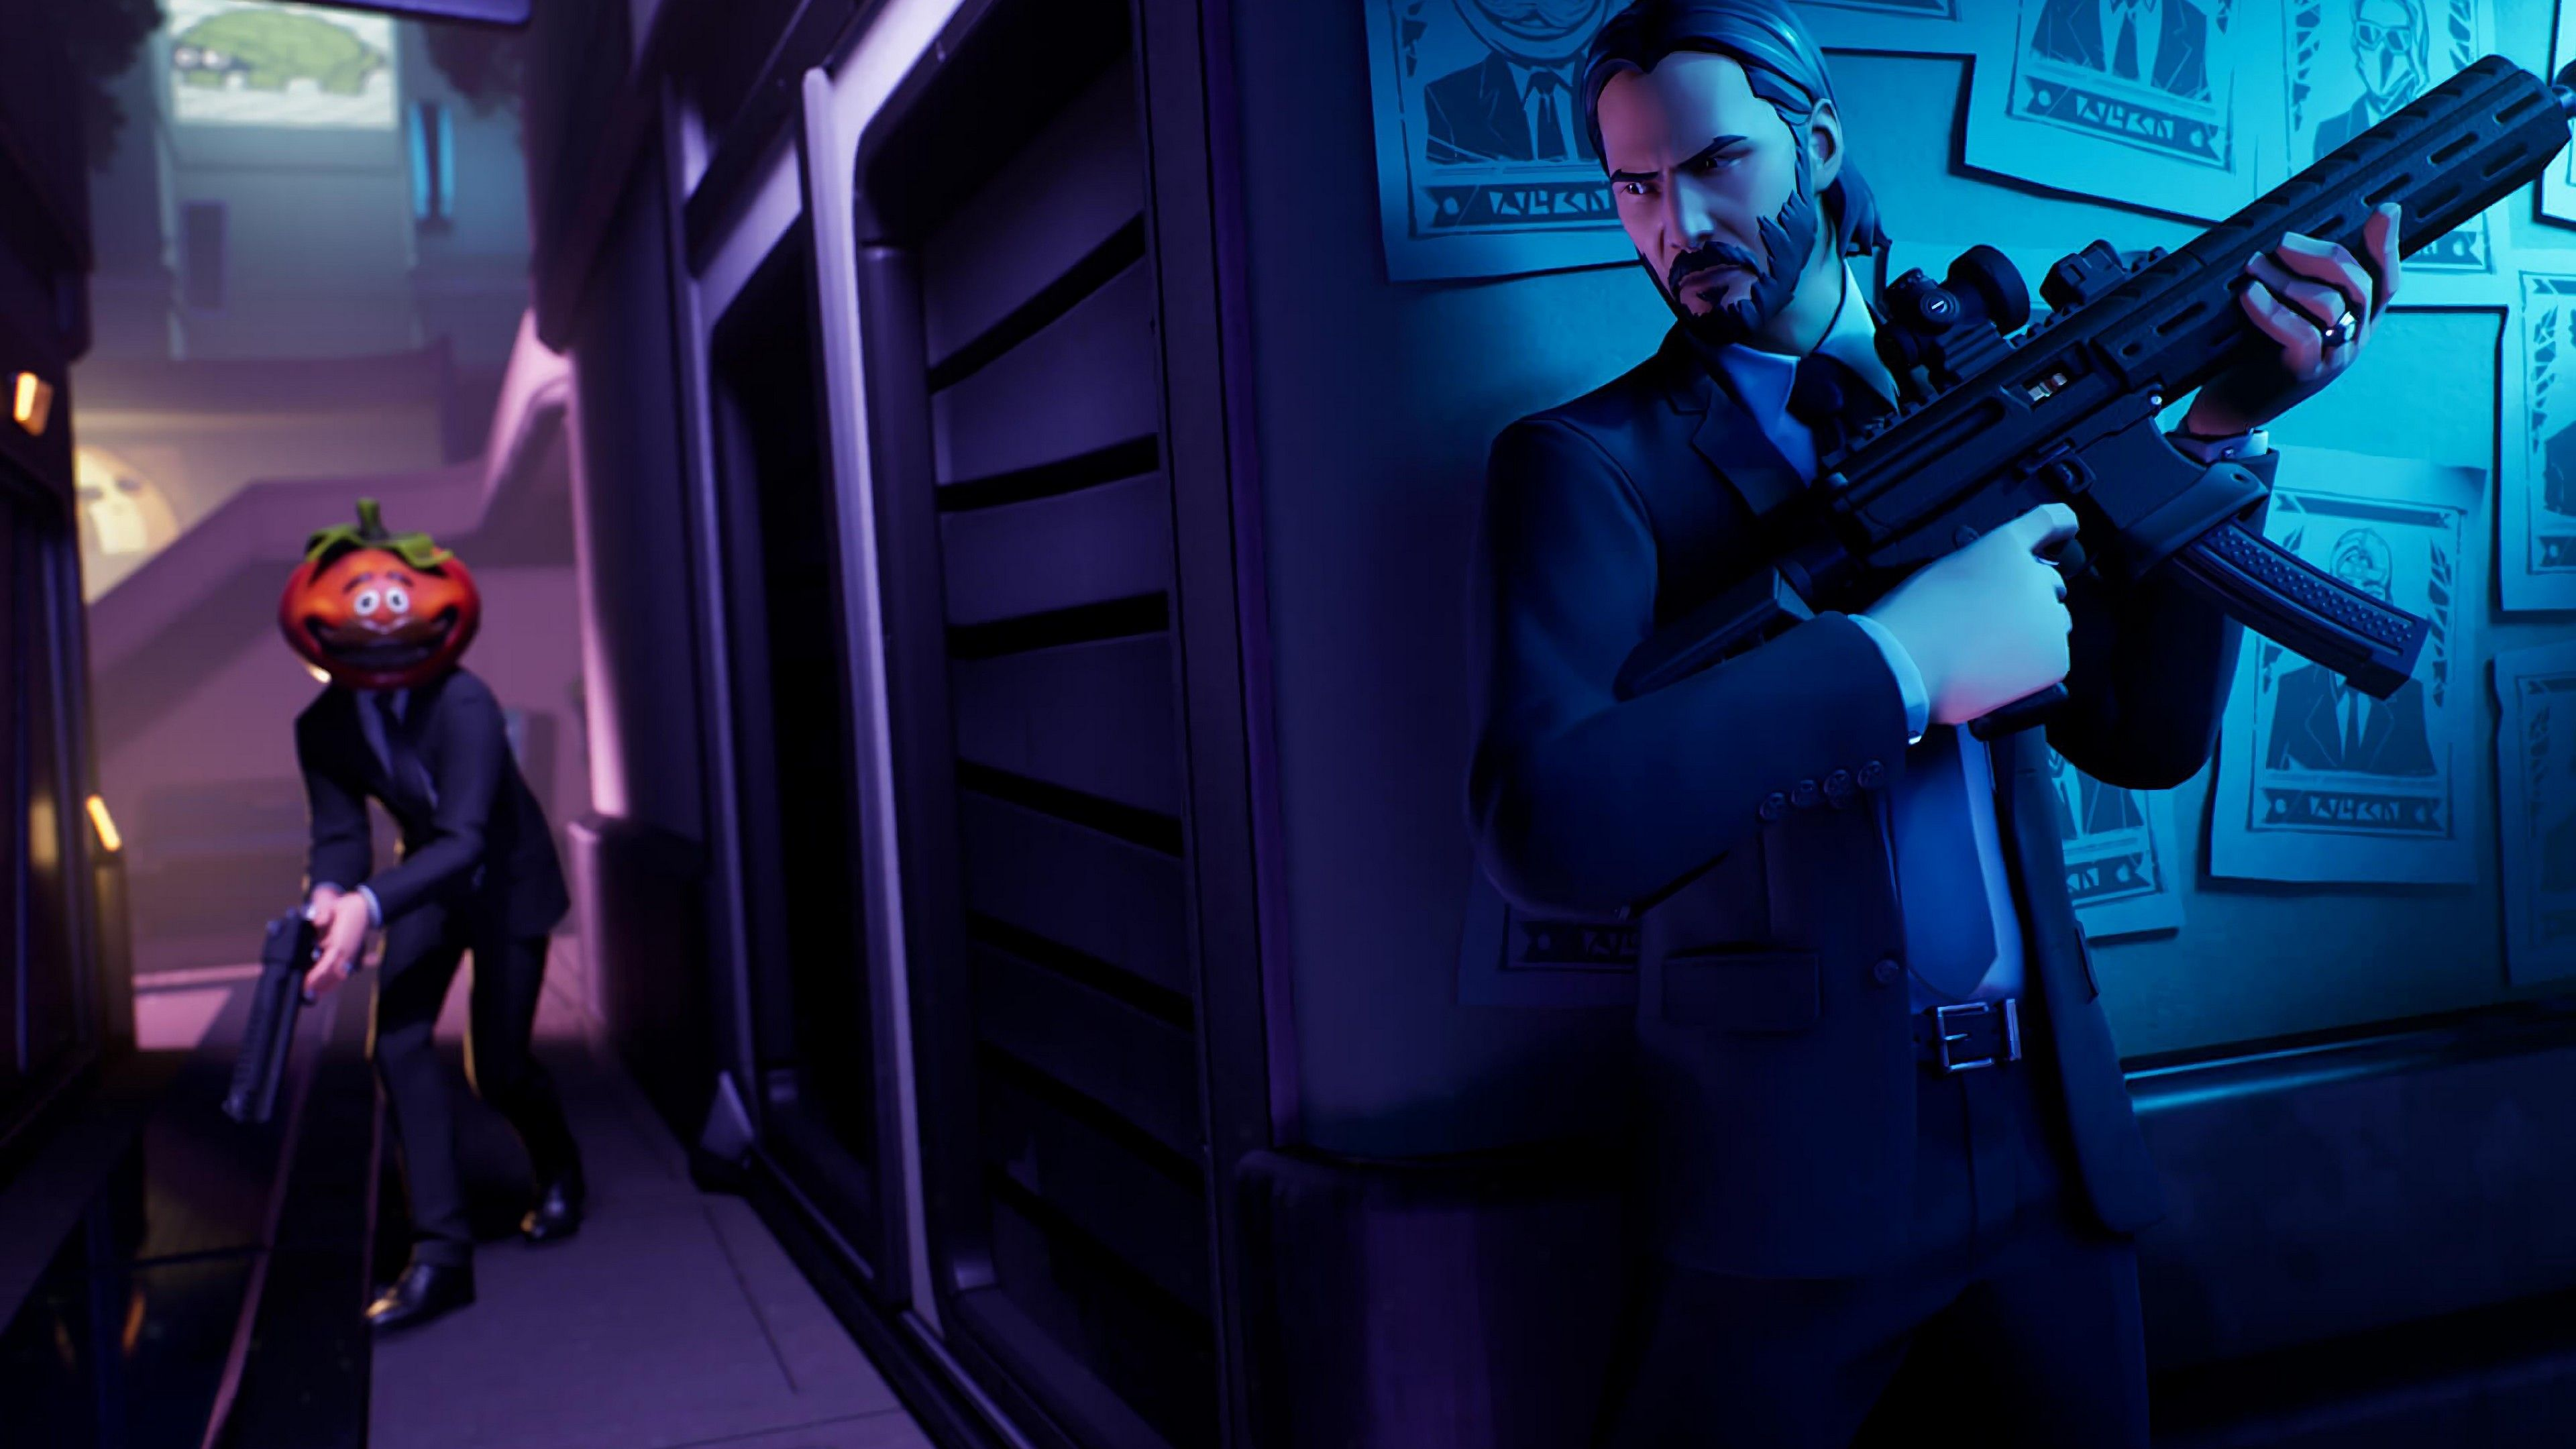 John Wick In Fortnite John Wick Wallpapers Hd Wallpapers Games Wallpapers Fortnite Wallpapers 4k Wallpapers Fortnite John Wick Star Trek Chess